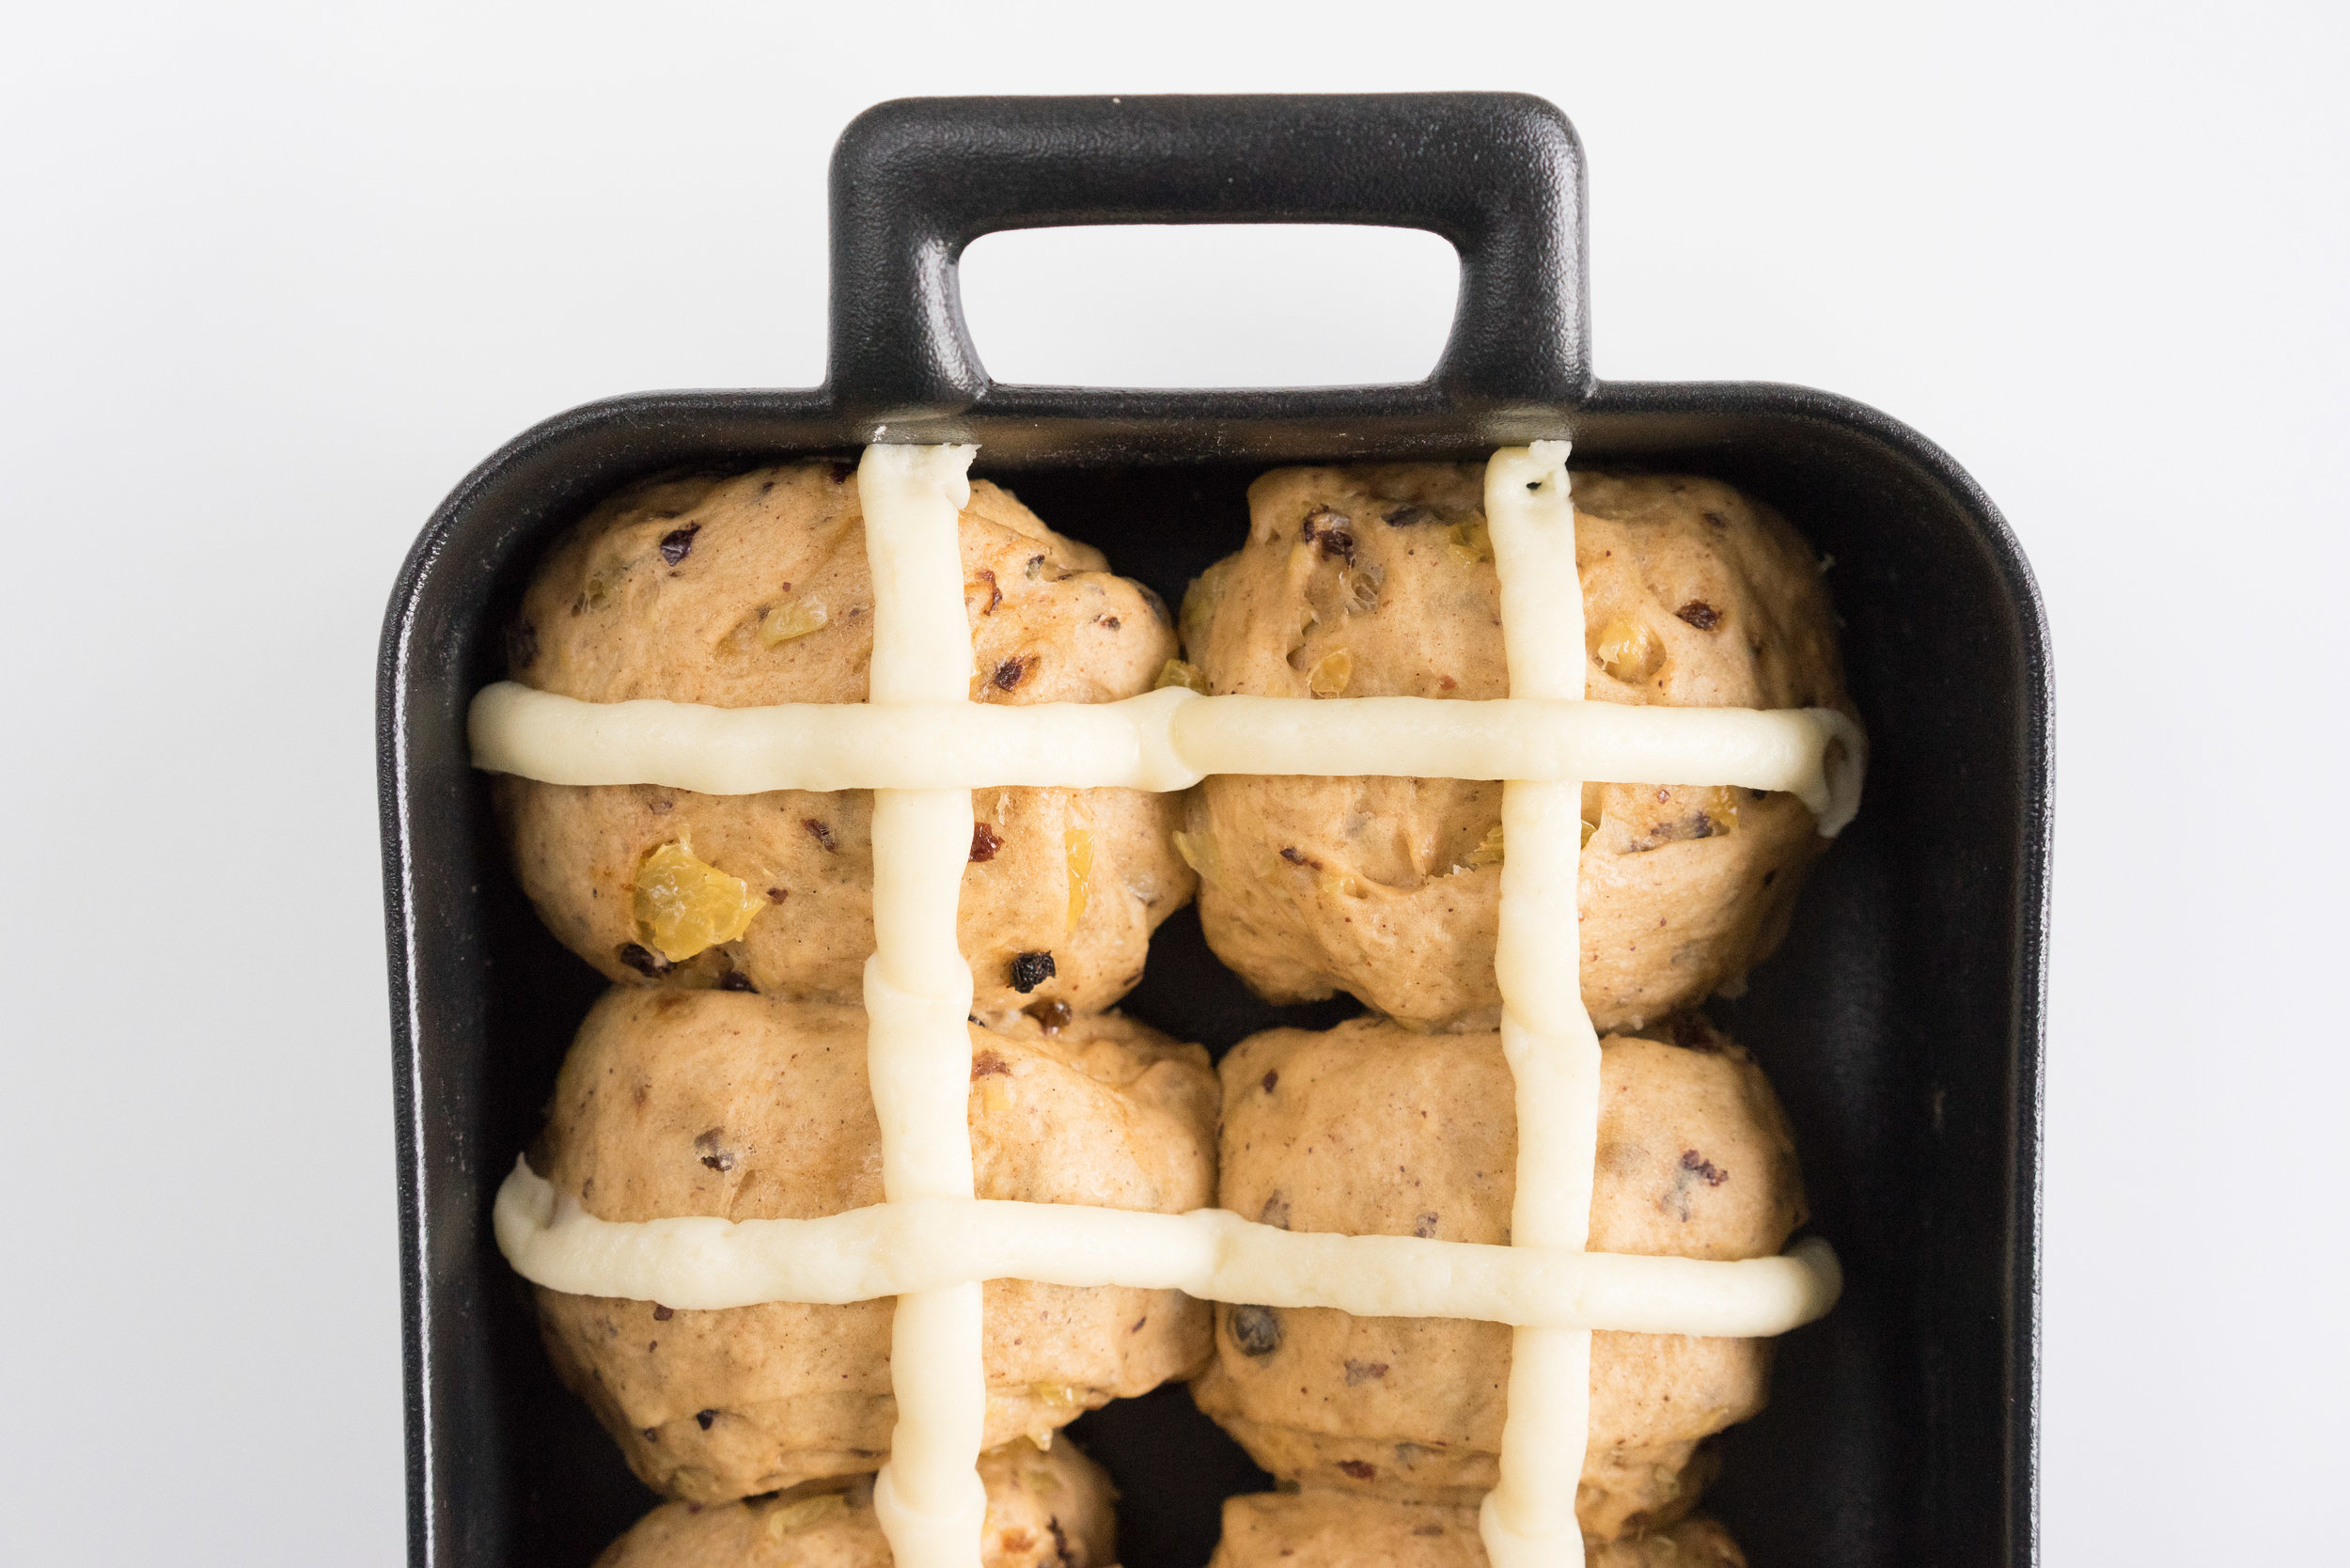 Vanilla Bean Glazed Hot Cross buns - fruity and spicy, with a choux pastry cross. Glazed with a vanilla bean glaze for a sweet, flavoursome finish. Perfect Easter baking treat.